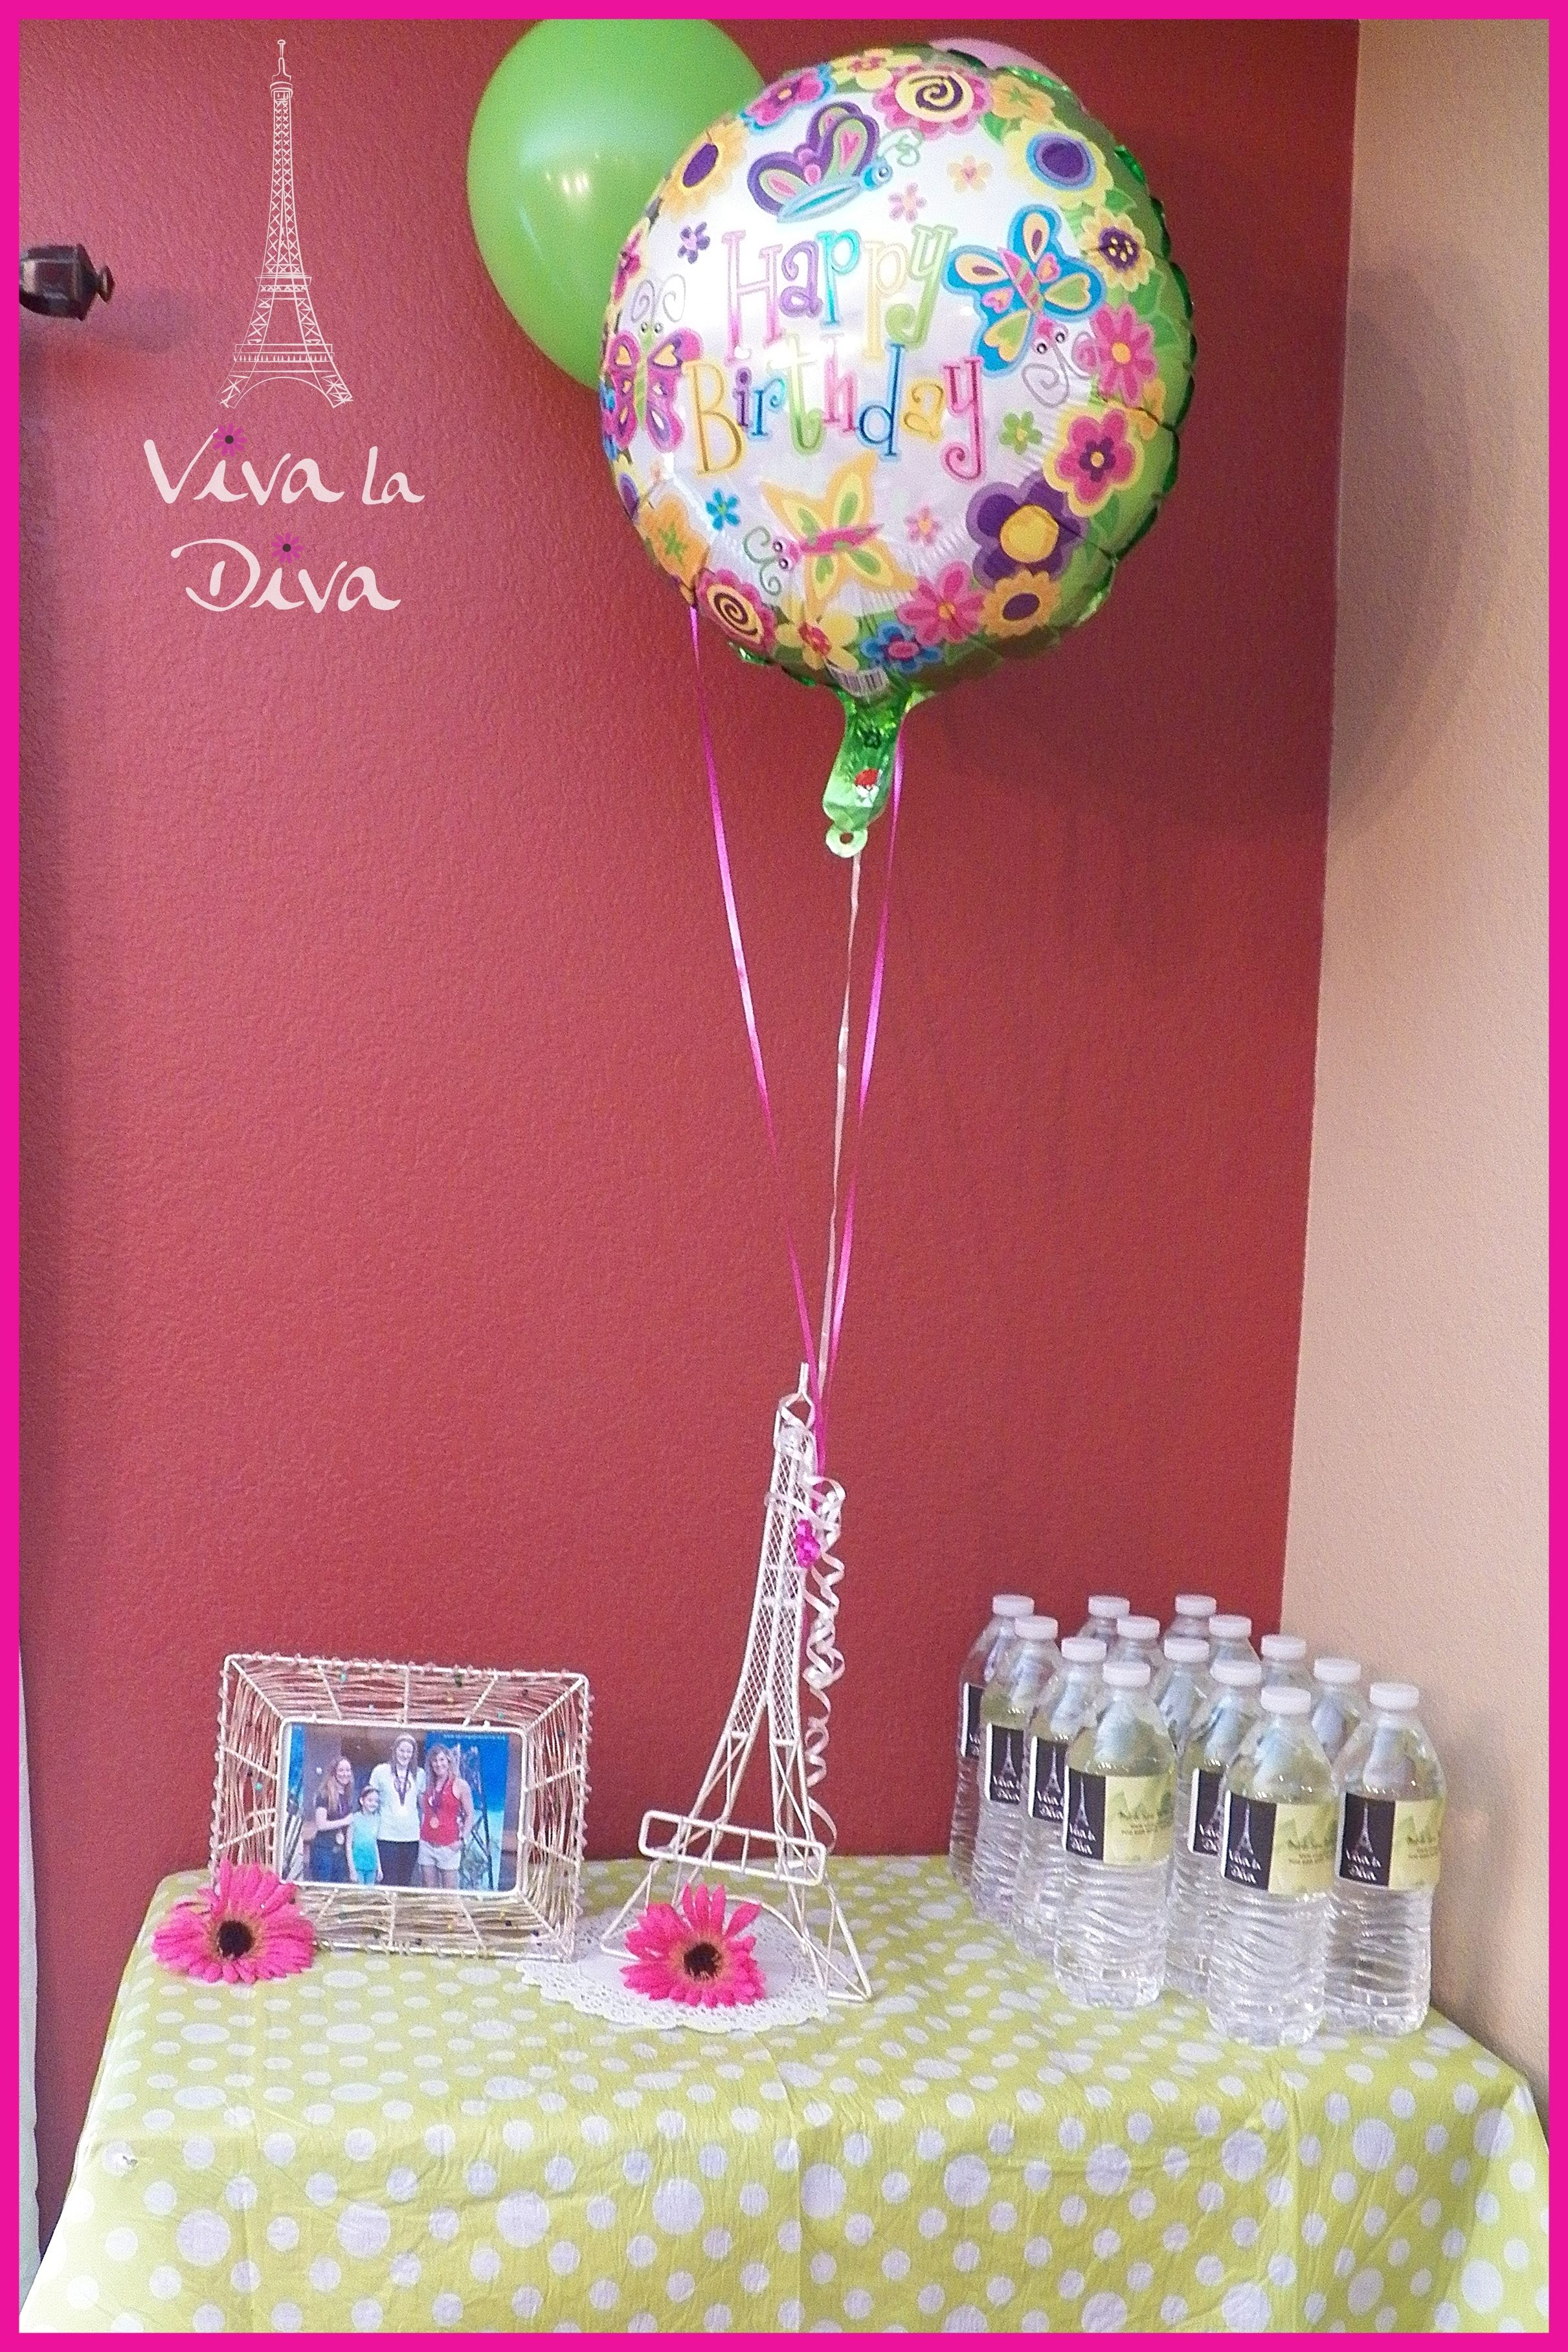 Spa Party Decorations Mobile Parties For Girls And Teens In Las Vegas Nevada